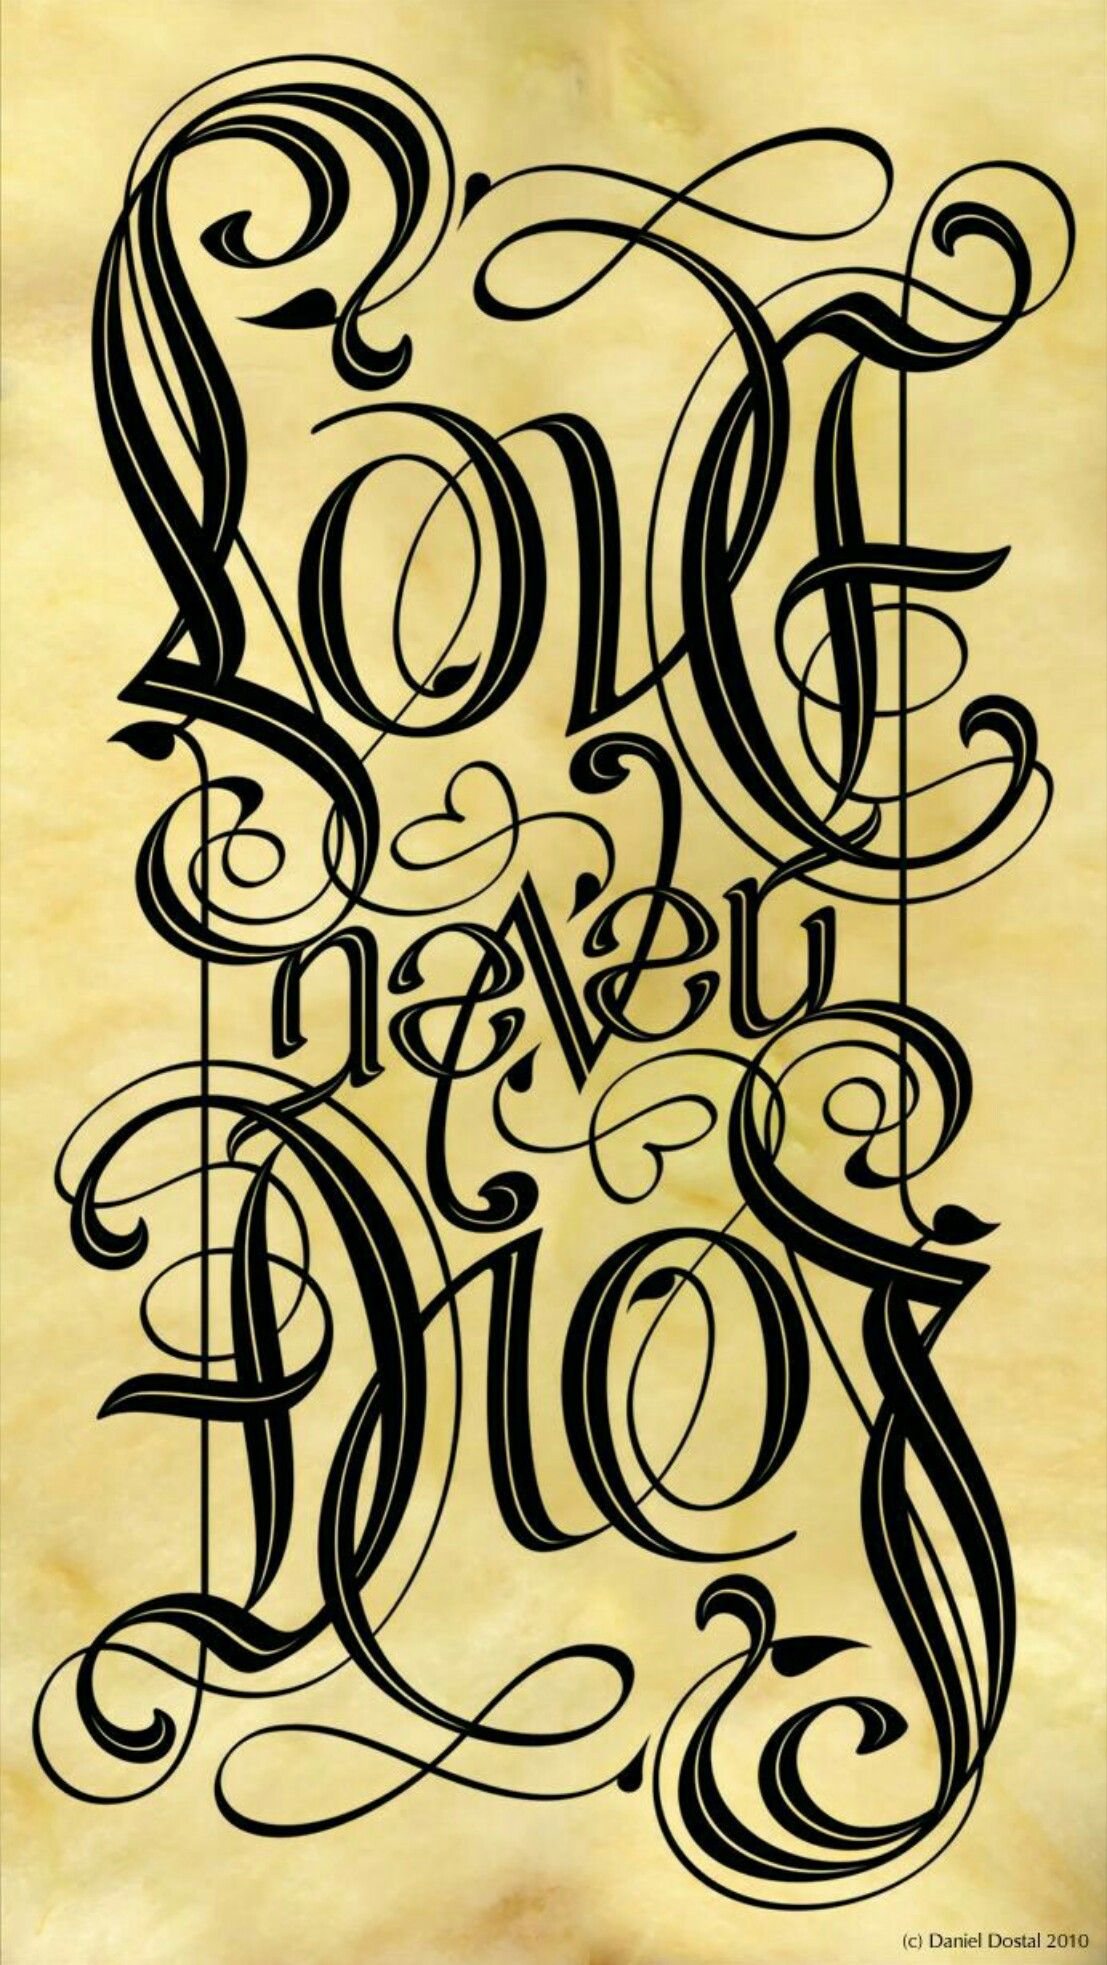 Ambigrams are amazing